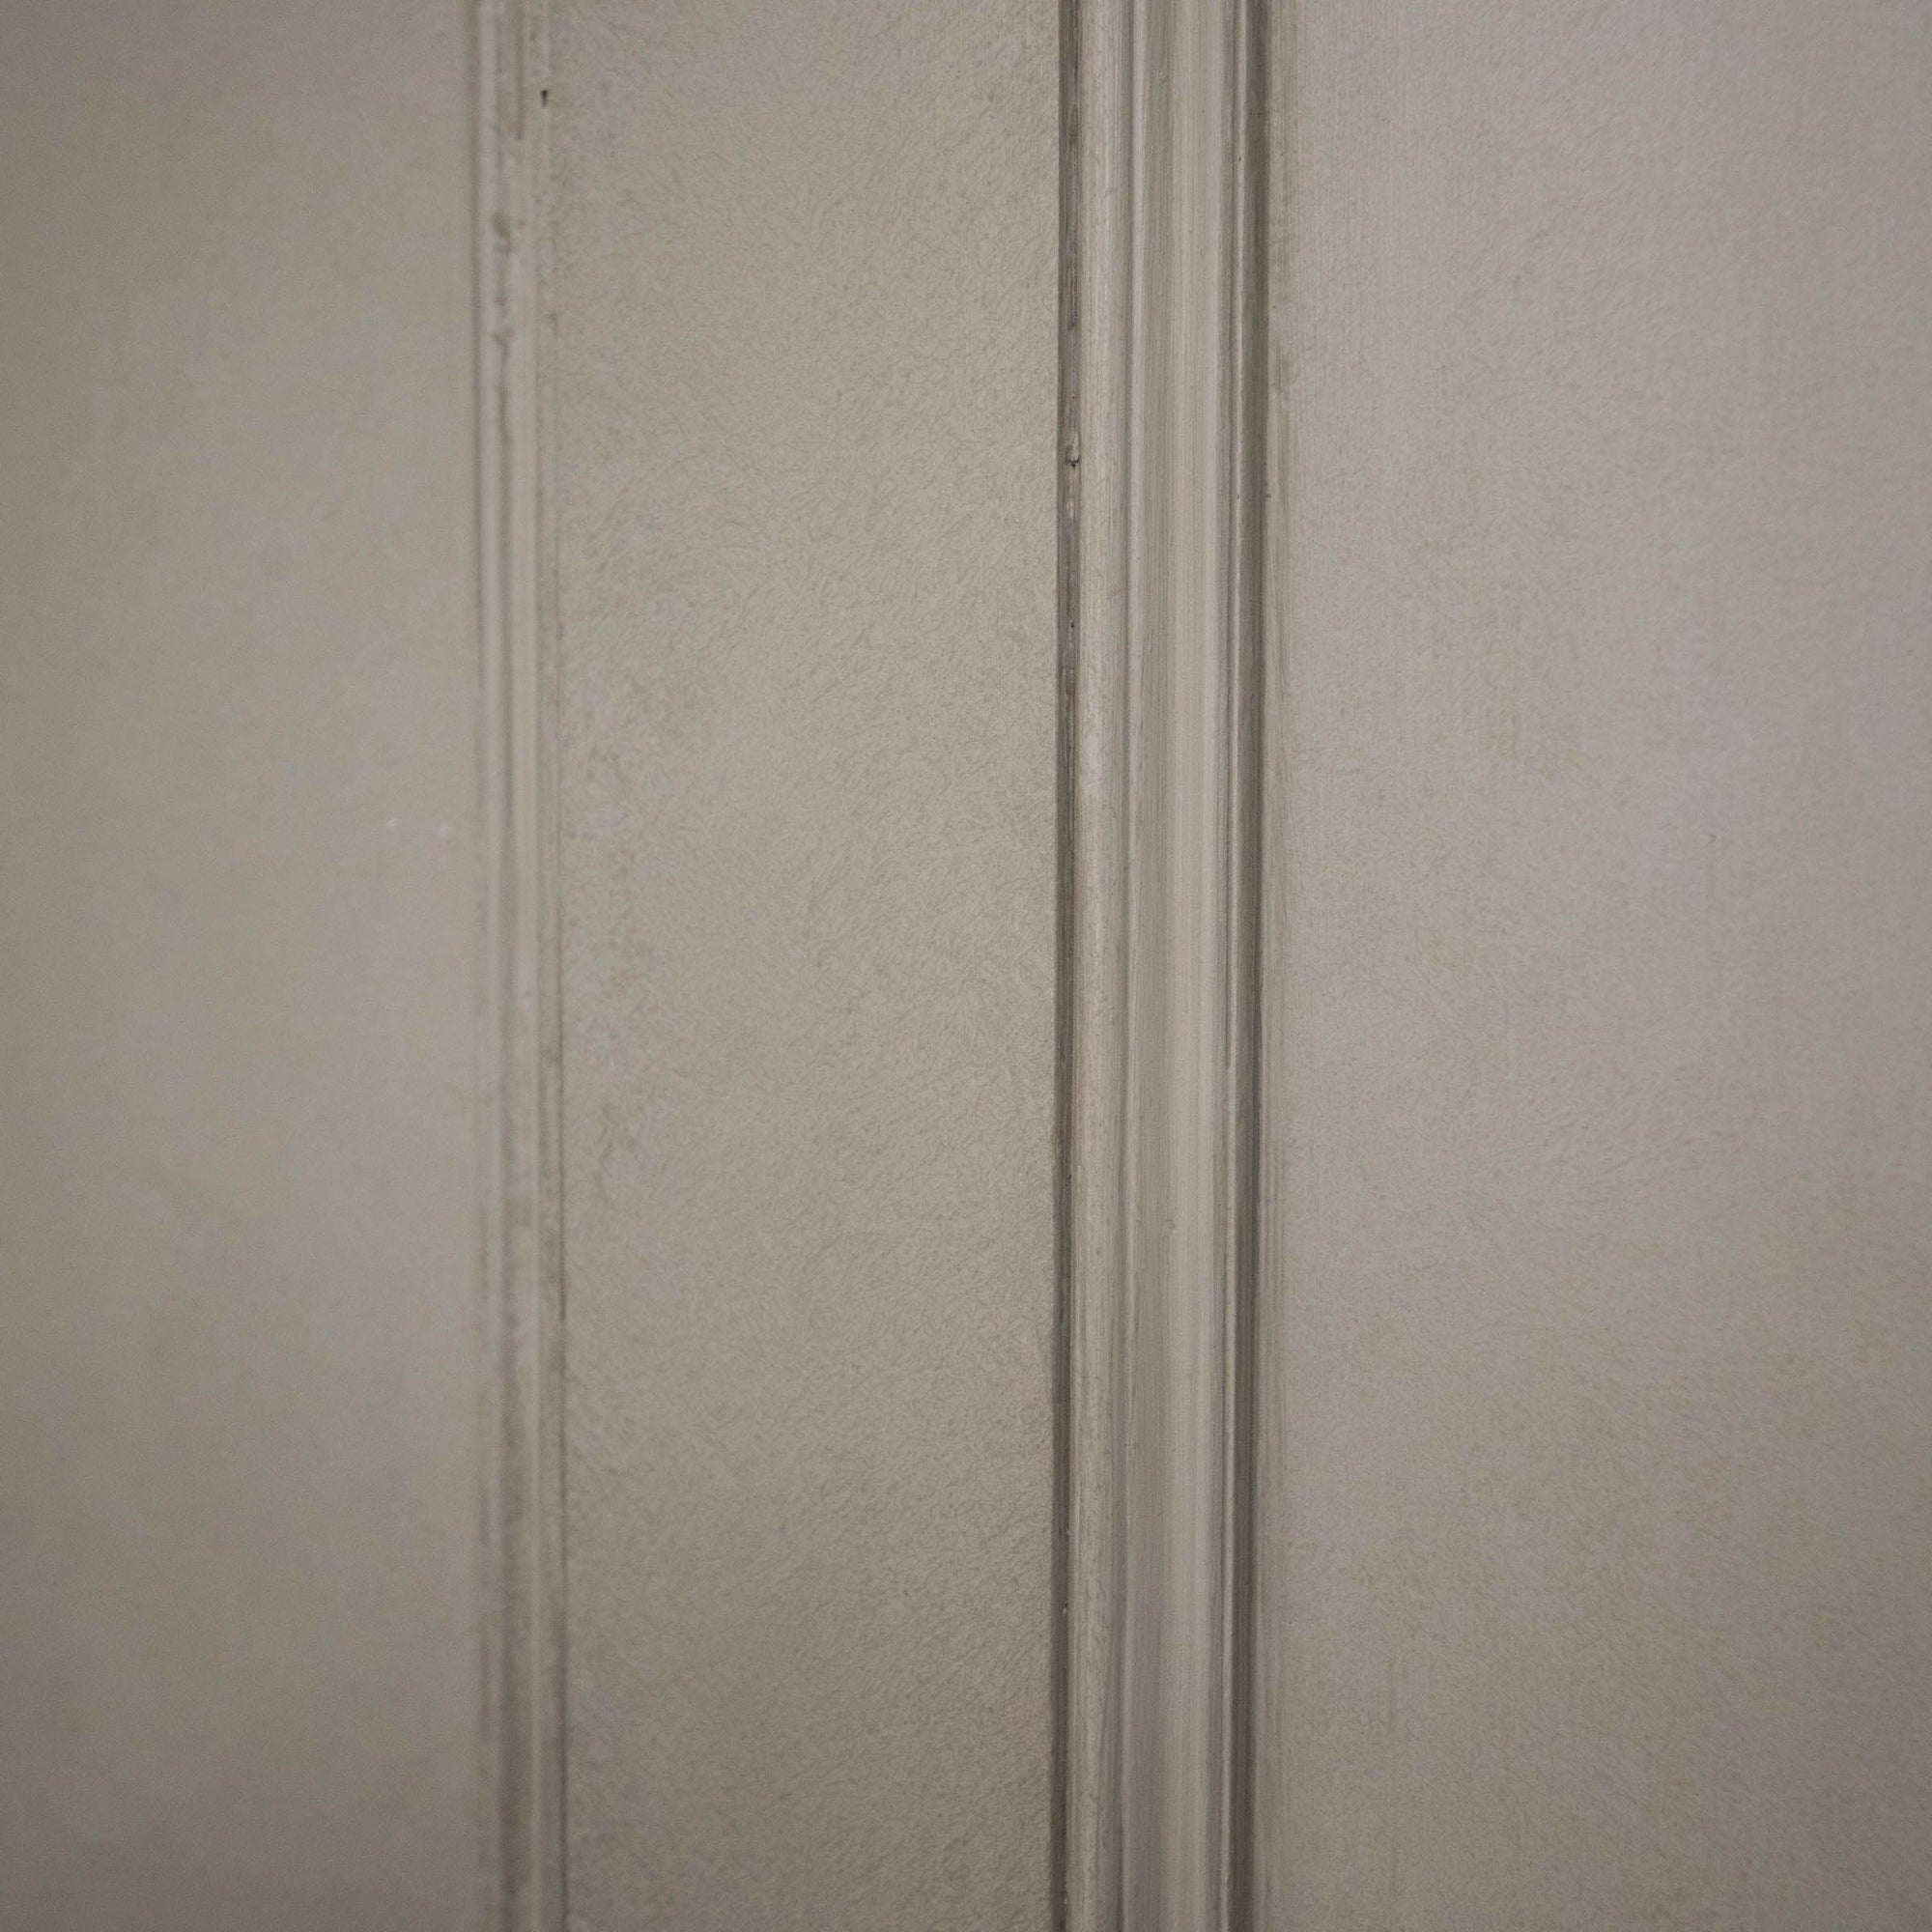 Large Antique Victorian 4 Panel Door - 214cm x 95cm | The Architectural Forum